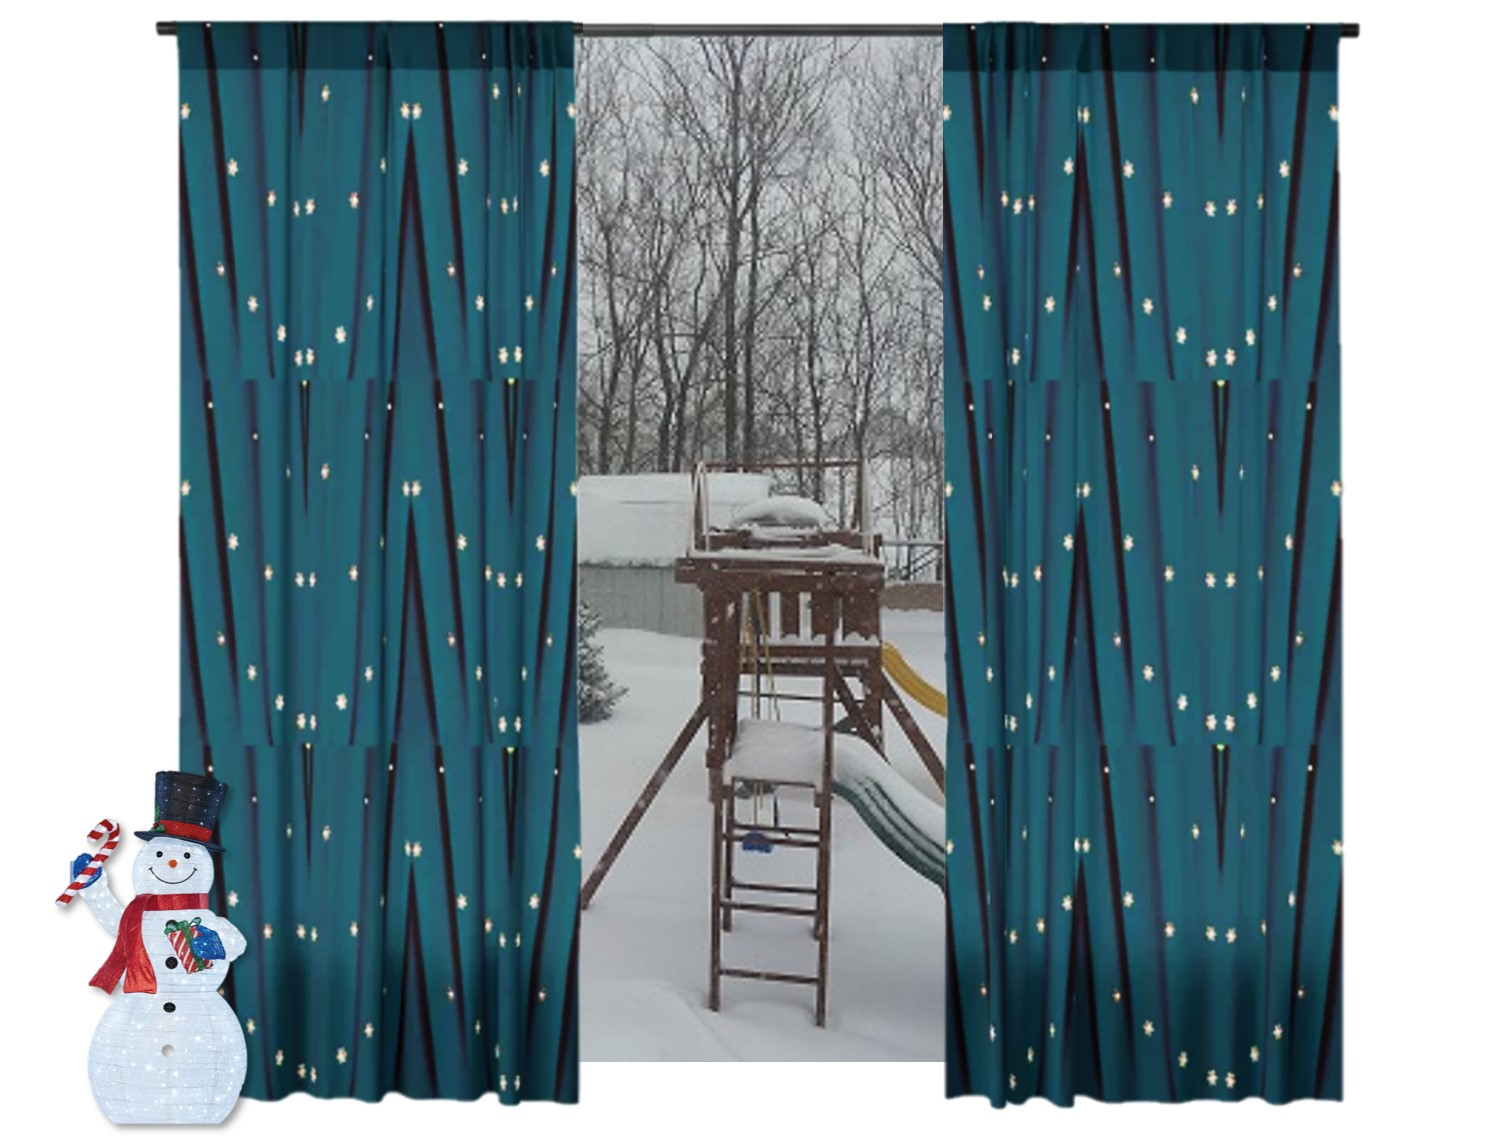 Living Room Curtains Holiday Colors Green Decorative Curtains And D Artikrti